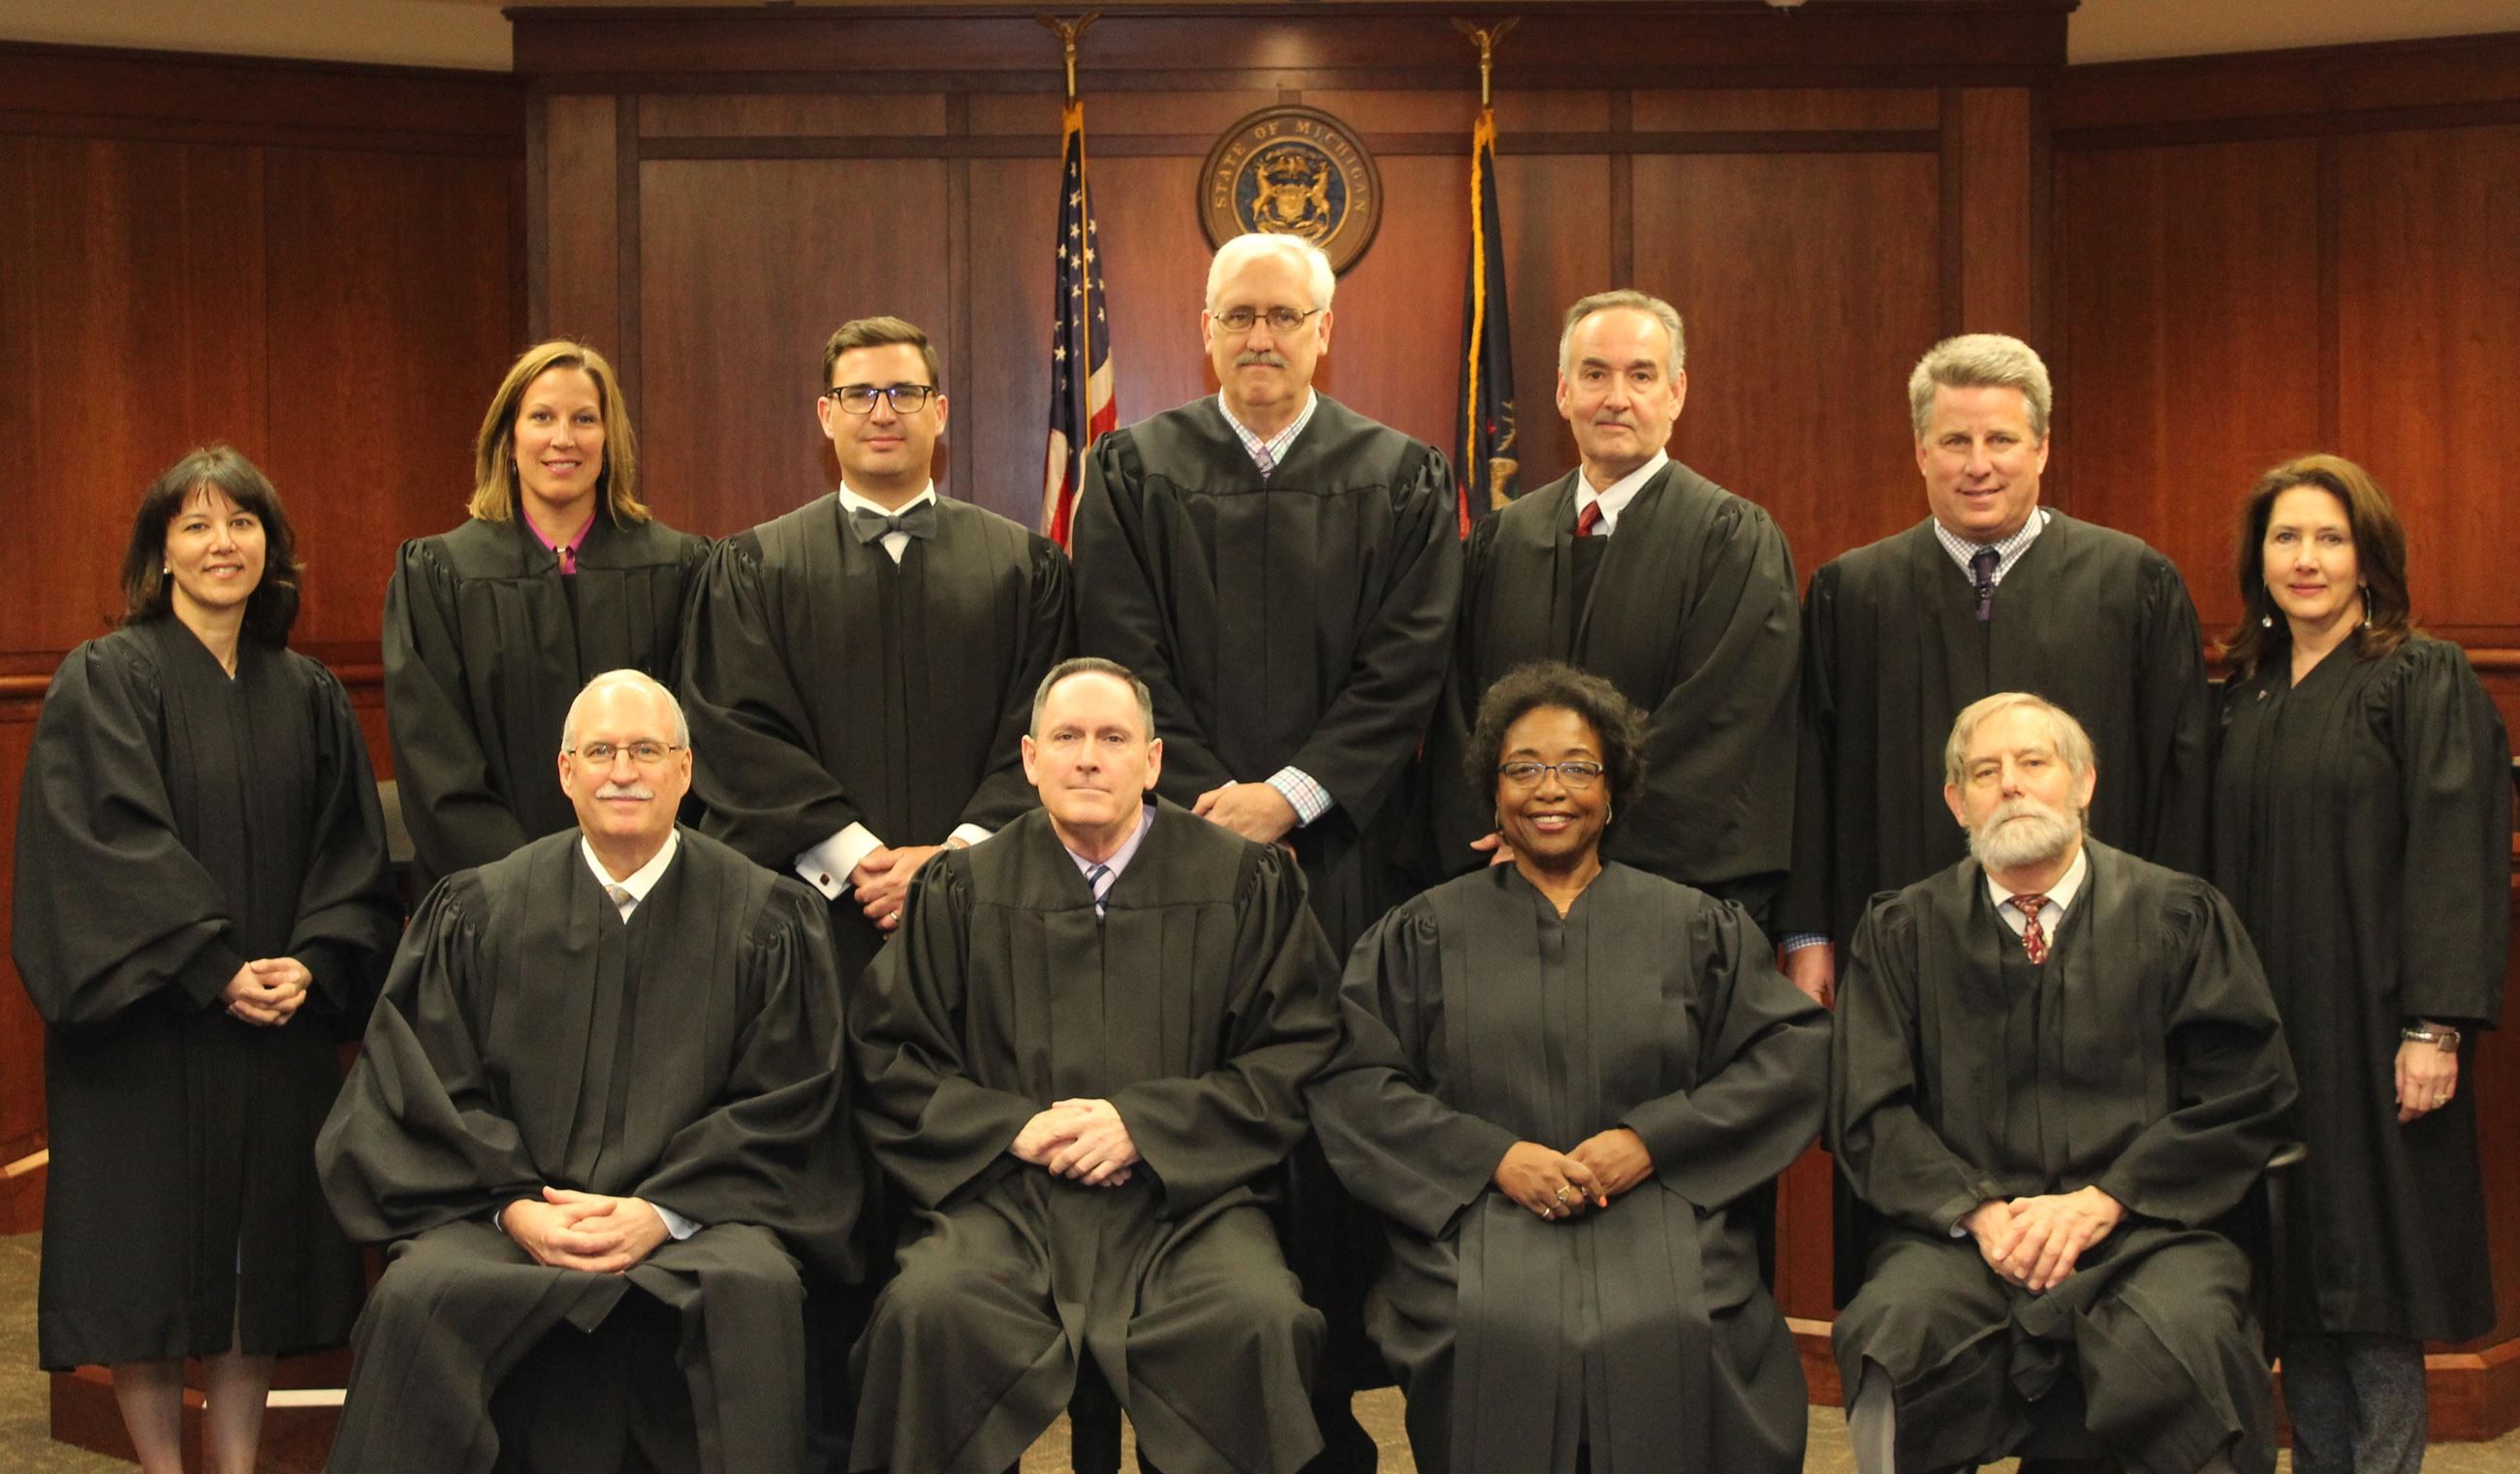 All County Judges